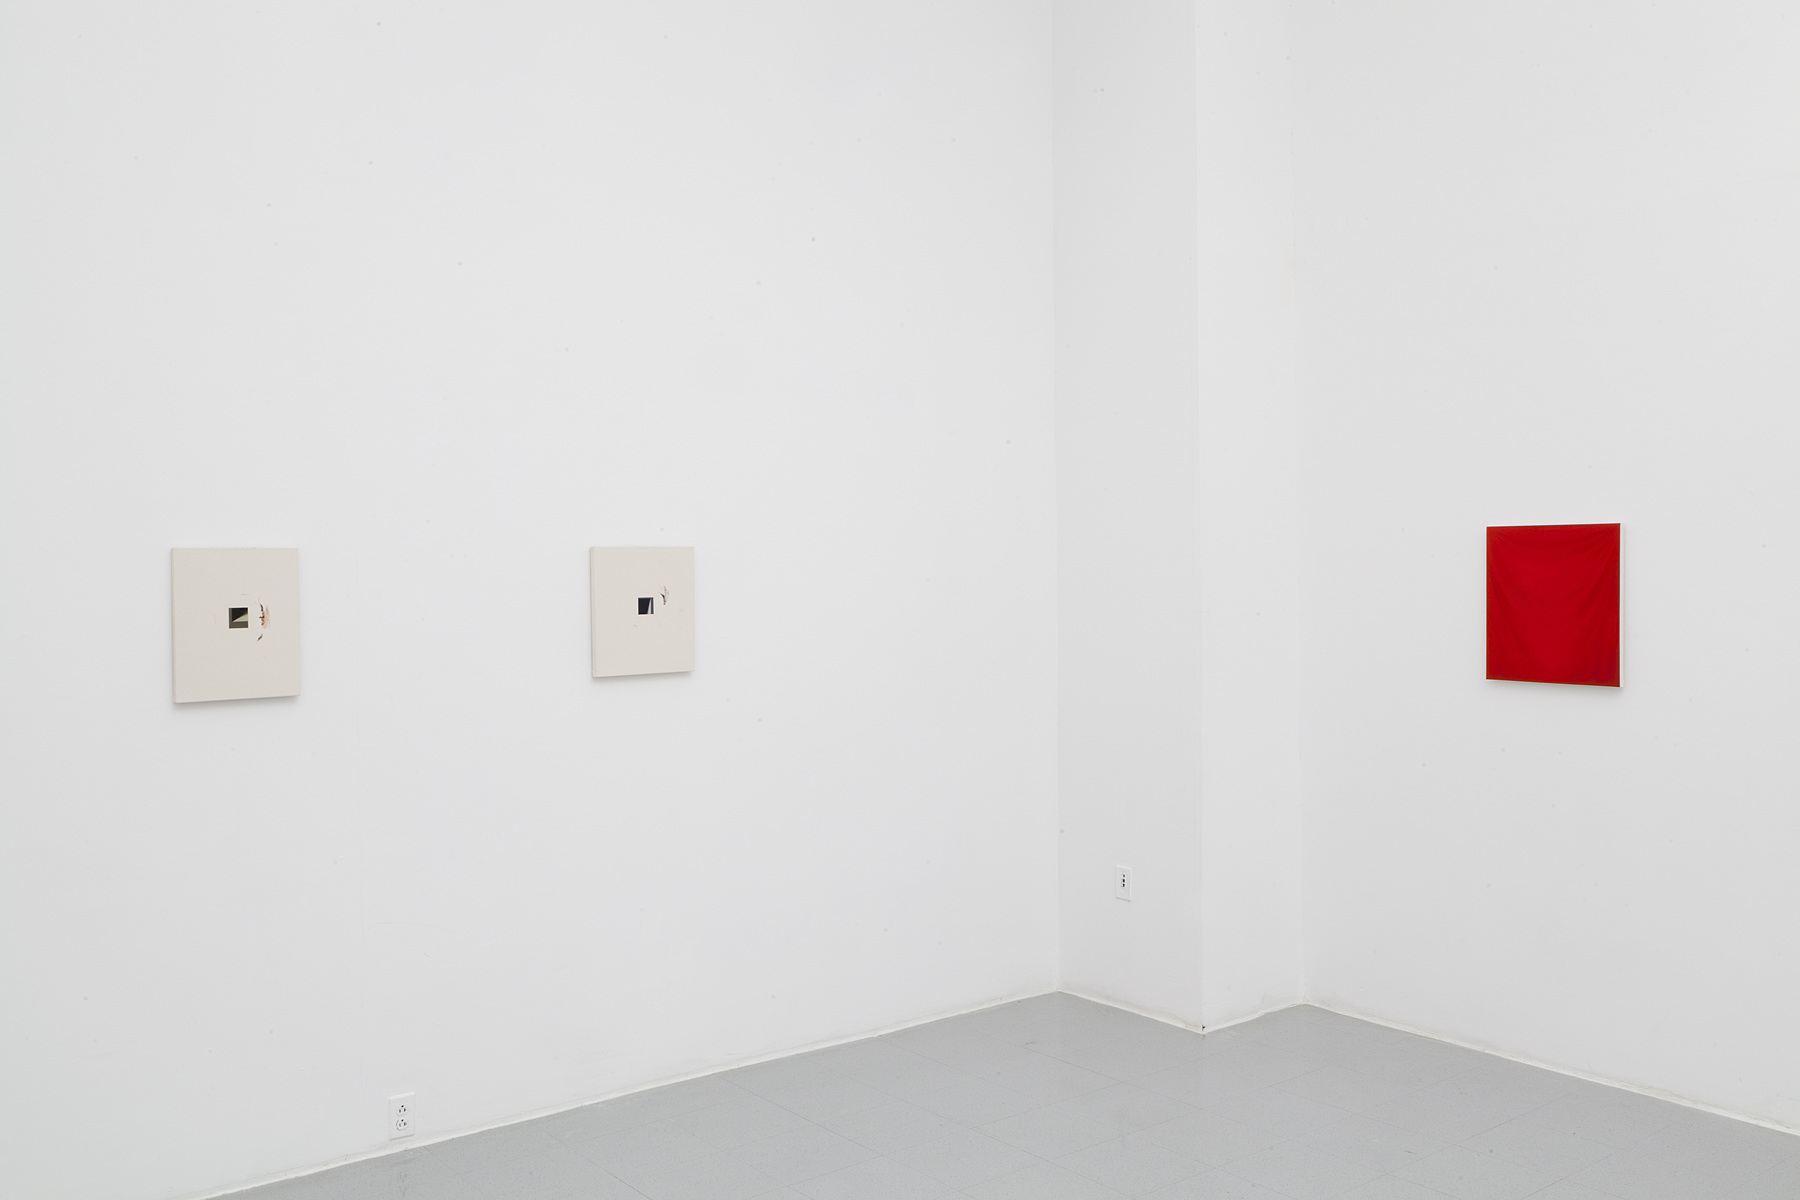 Through a Glass Darkly, group exhibition at the Mason Gross Galleries, September, 2015